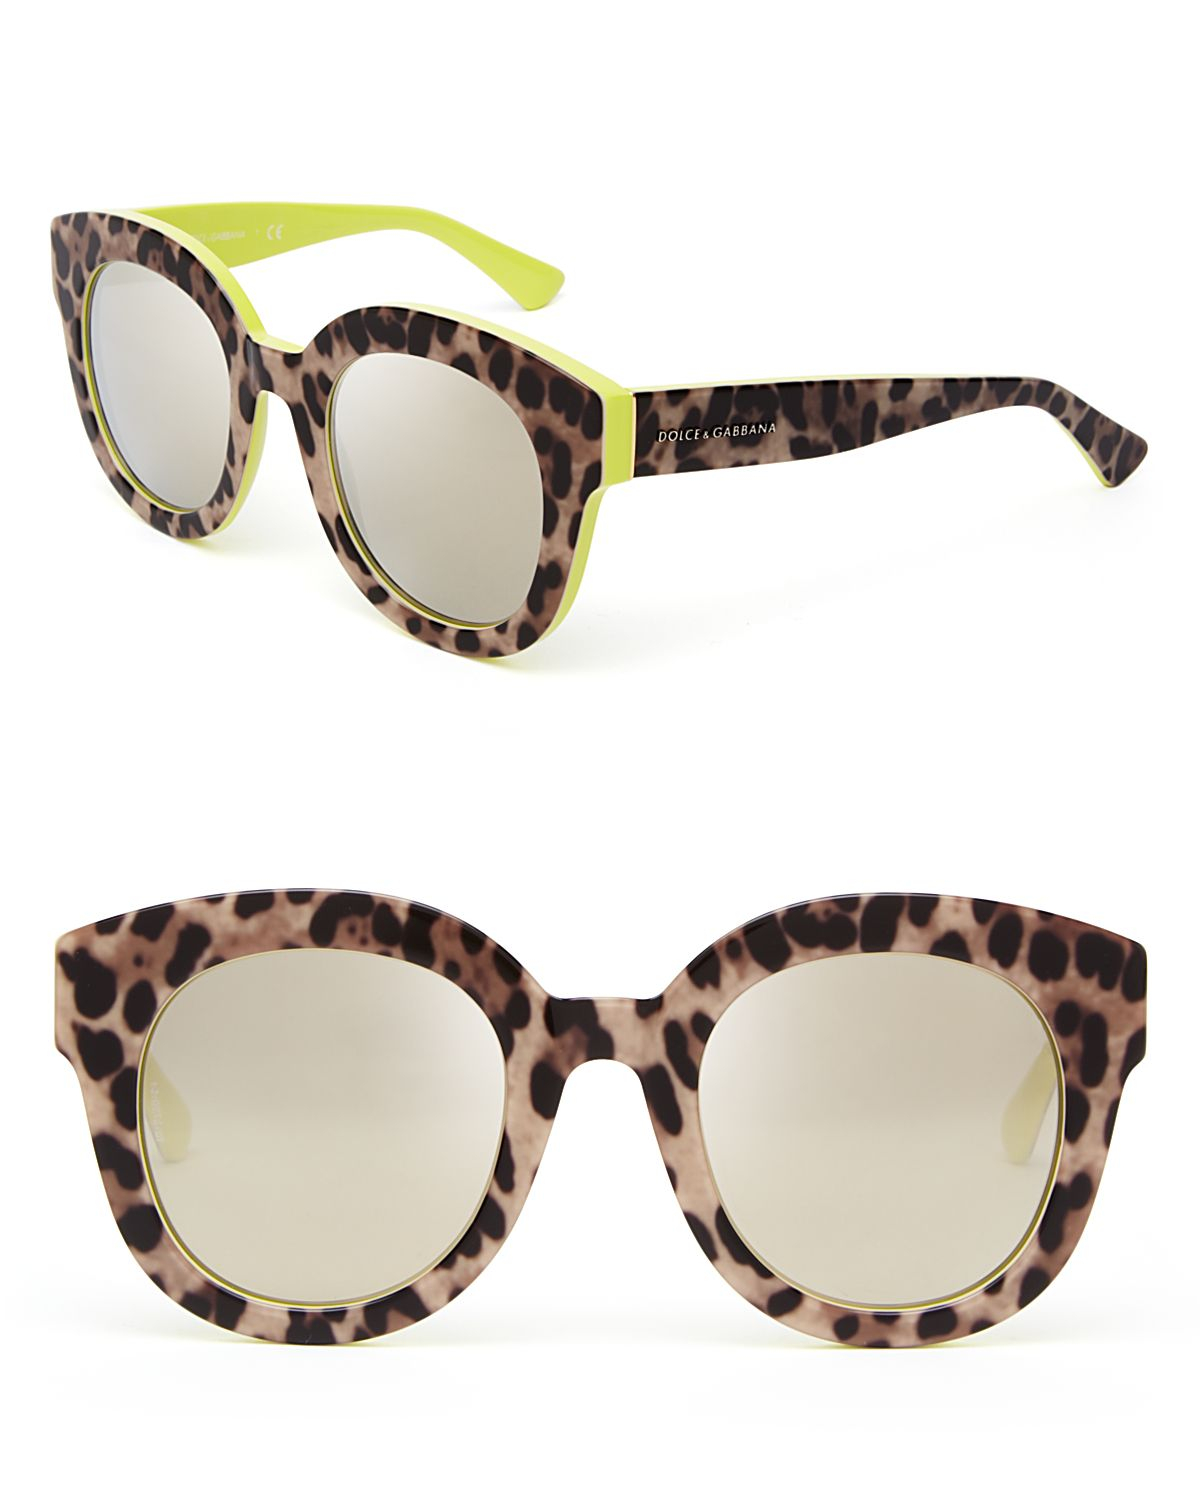 Oversized Mirrored Sunglasses  dolce gabbana dolce gabbana animalier mirrored oversized round